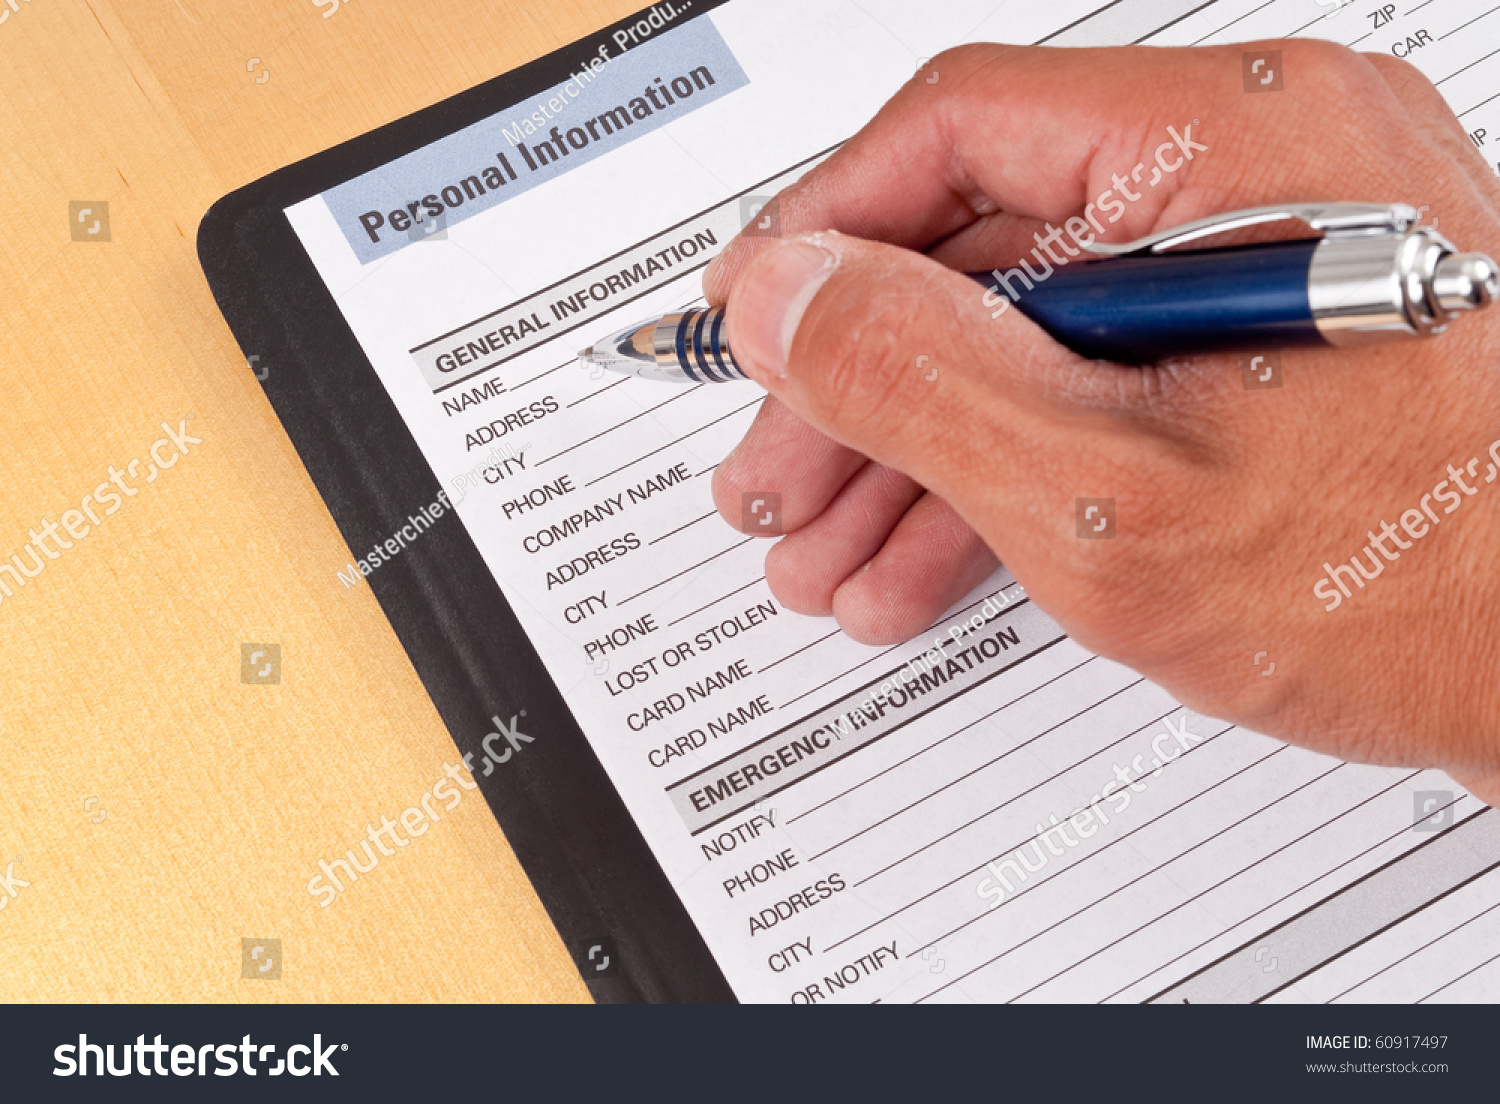 Filling Out Personal Information Worksheet Stock Photo